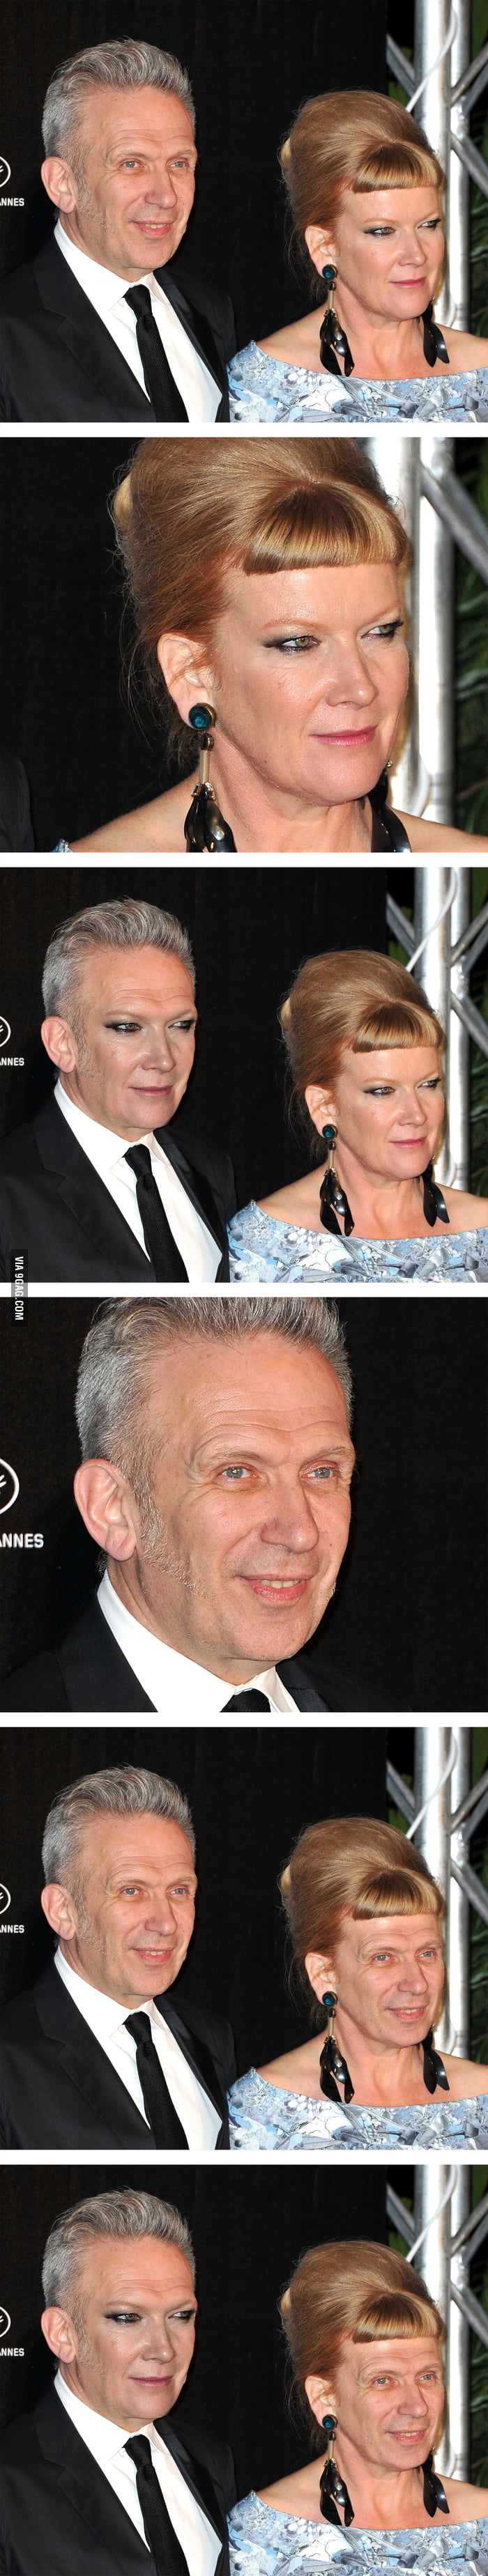 Funny Cannes Film Festival 2012